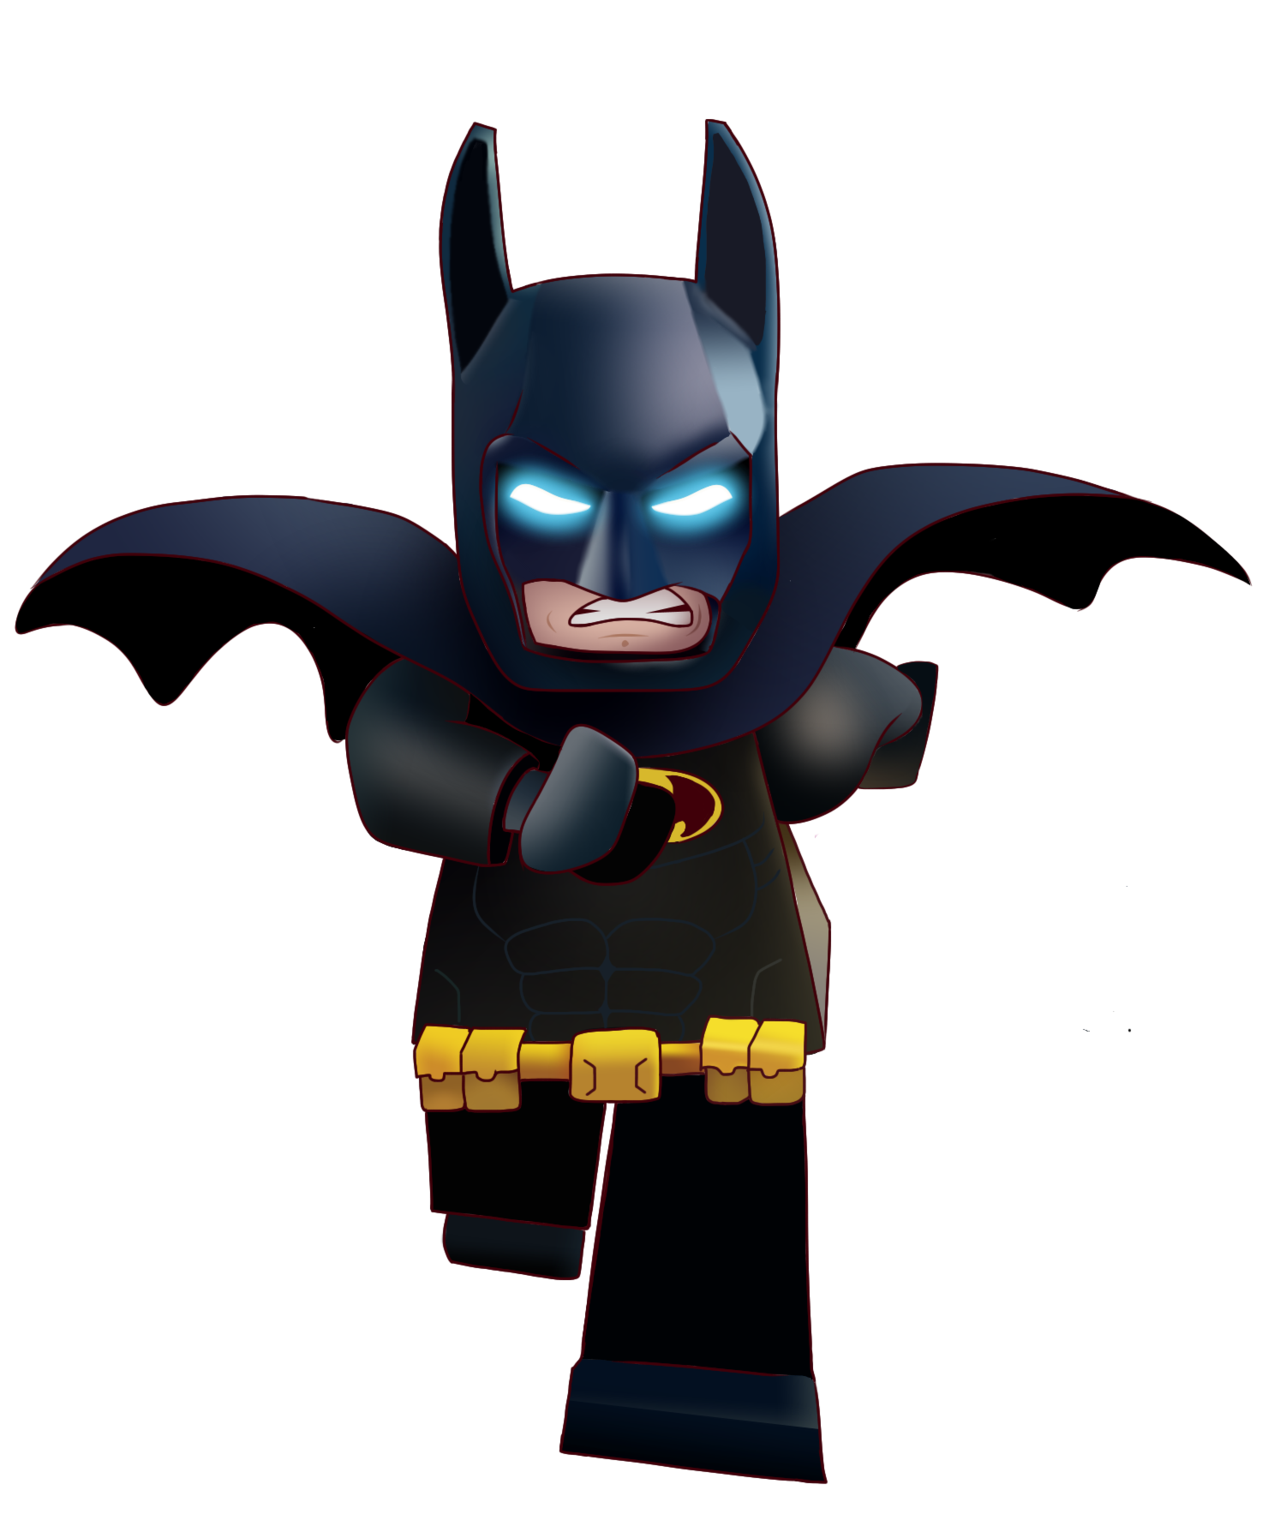 Batman lego characters clipart banner freeuse download Lego Batman Clipart | Free download best Lego Batman Clipart on ... banner freeuse download